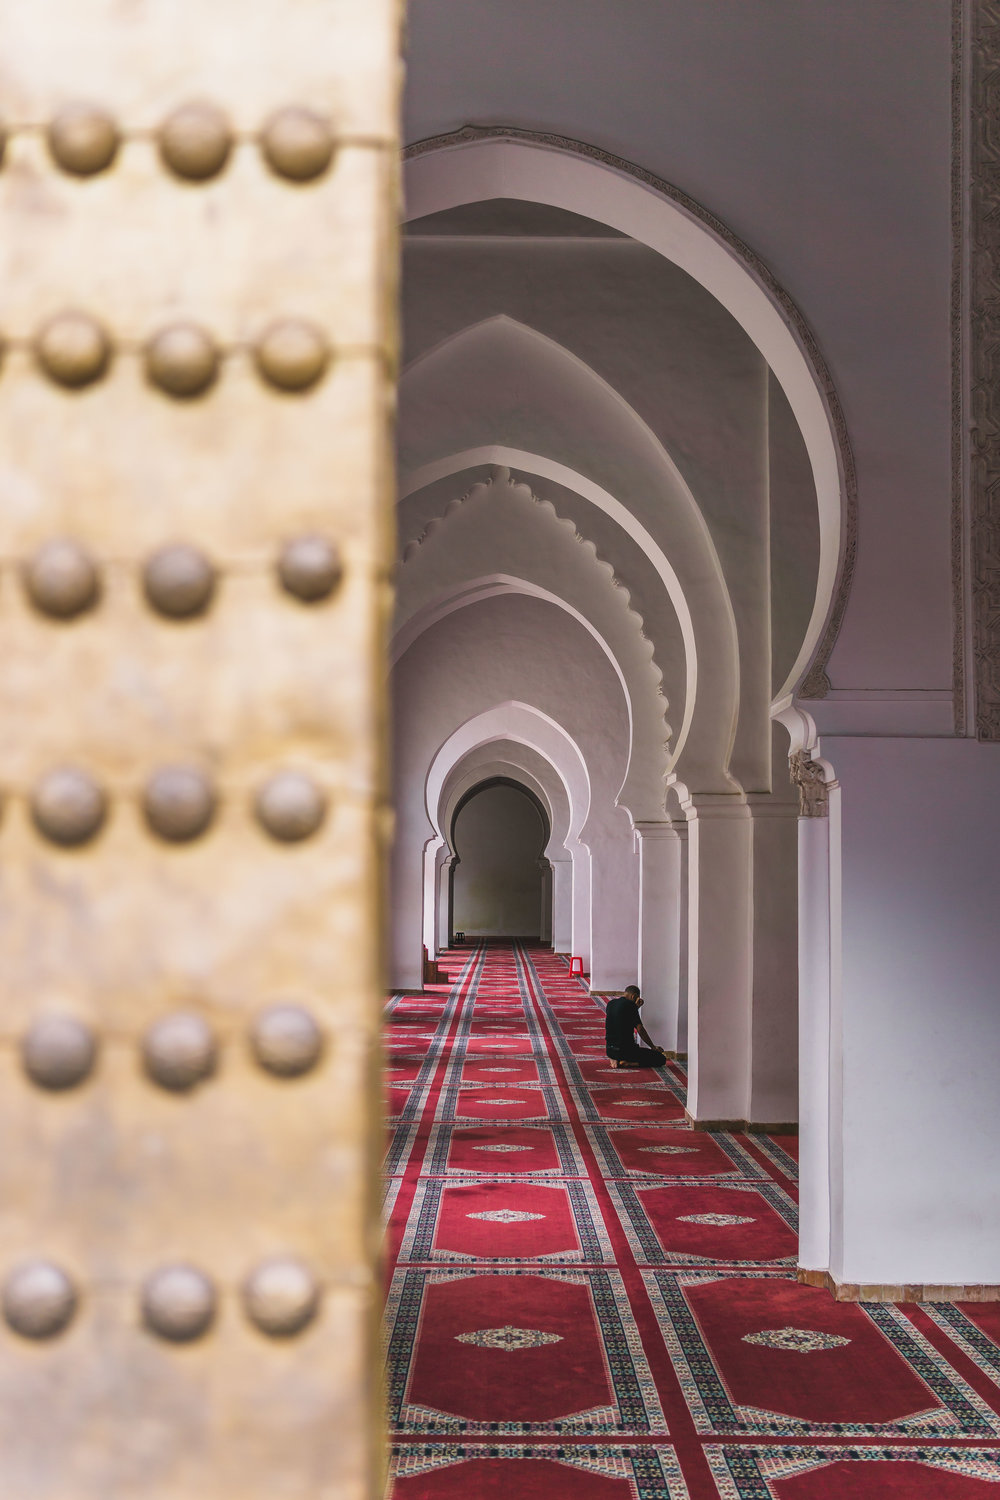 Moulay El yazid Mosque I, Marrakech